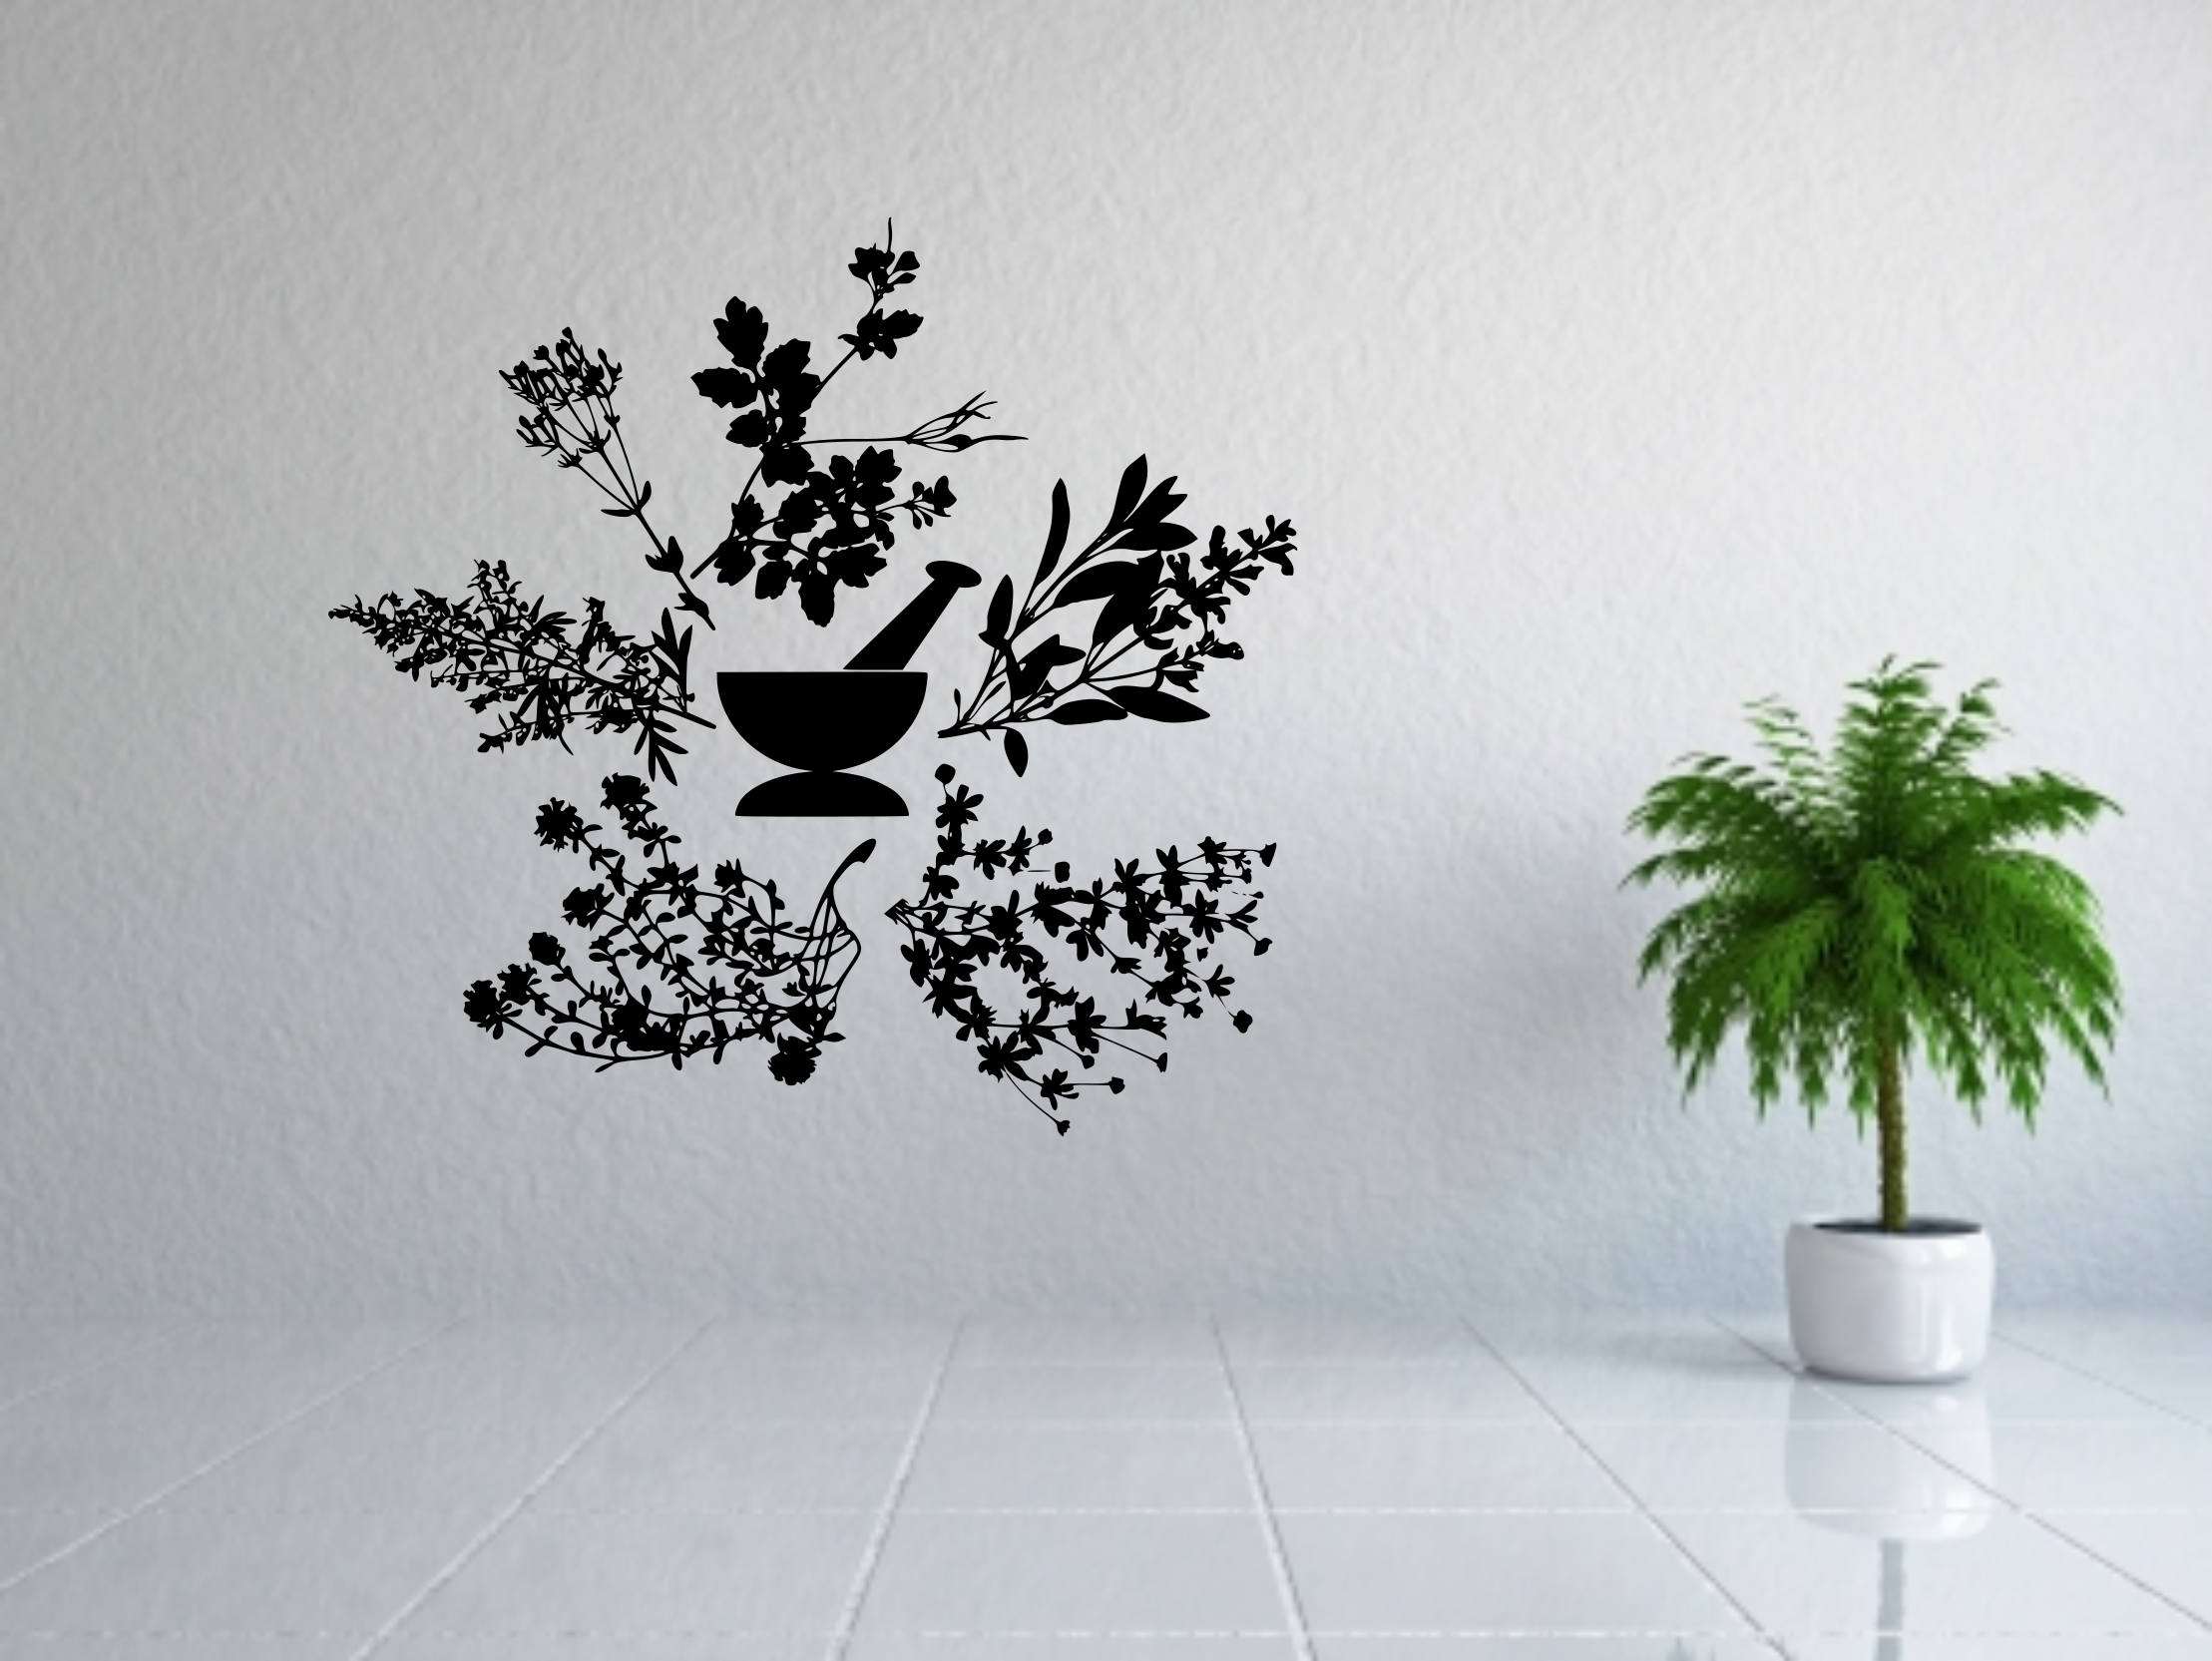 Apothecary Wall Art, Apothecary Sign, Apothecary Decor, Herbs Decal Within Most Popular Herb Wall Art (View 18 of 20)